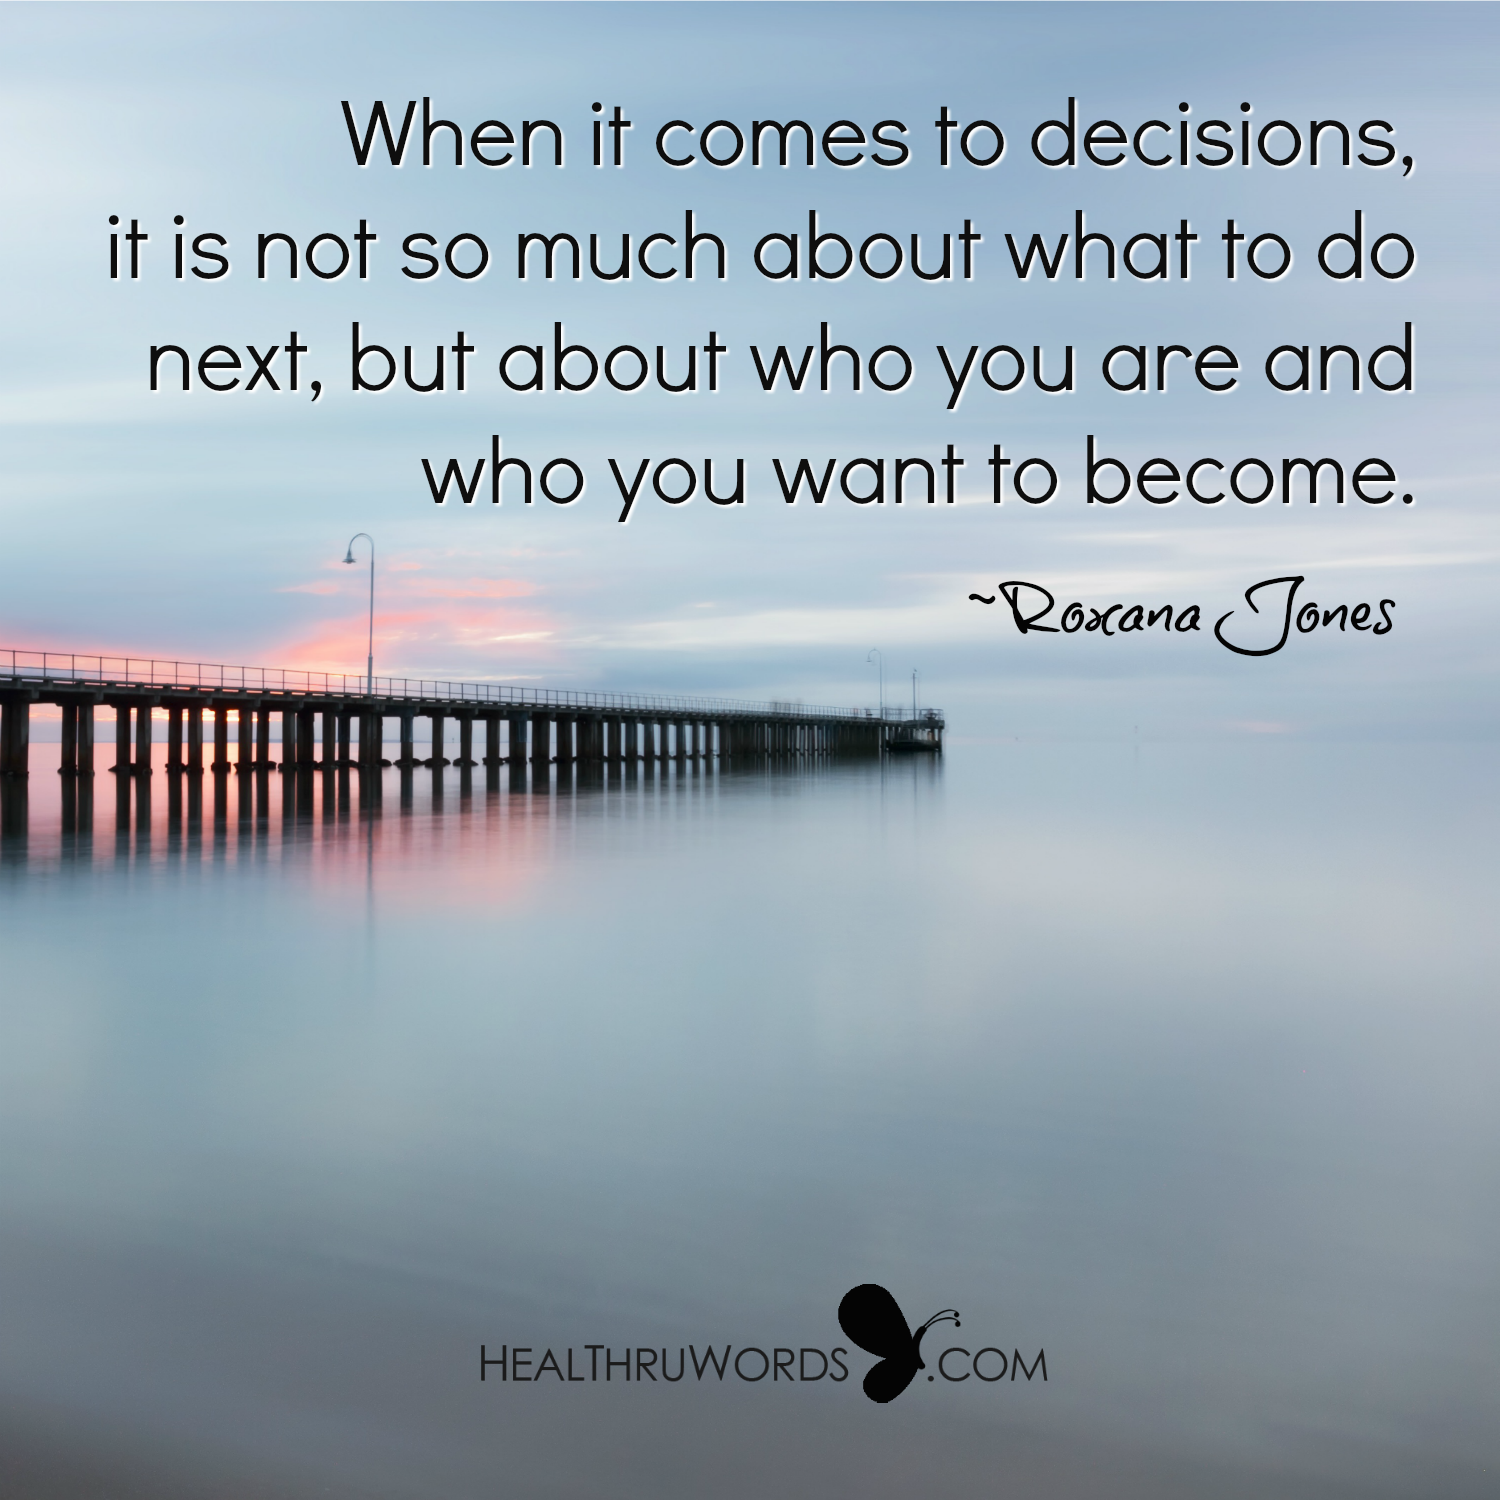 Inspirational Image: Real Decisions